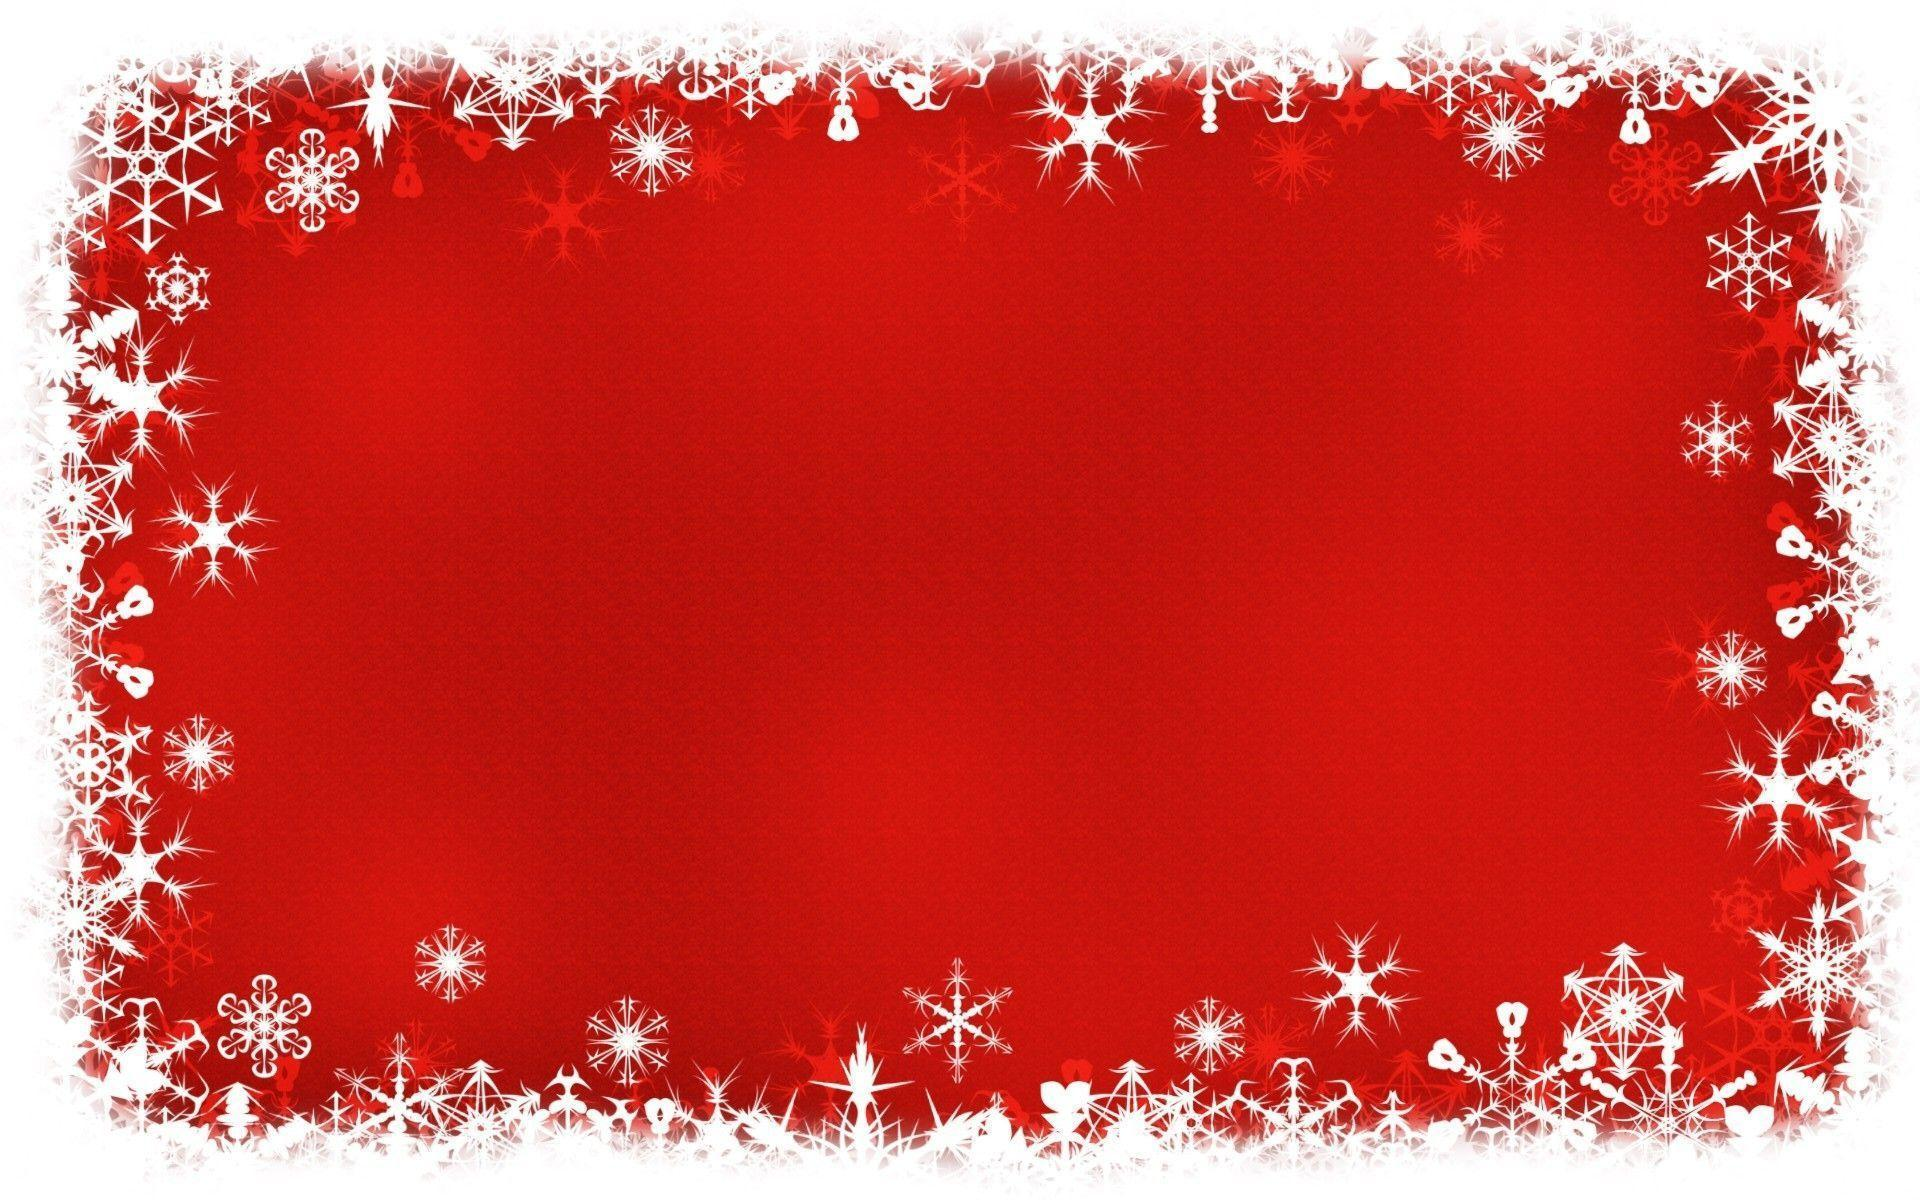 xmas stuff for red christmas tree background - Red Christmas Background